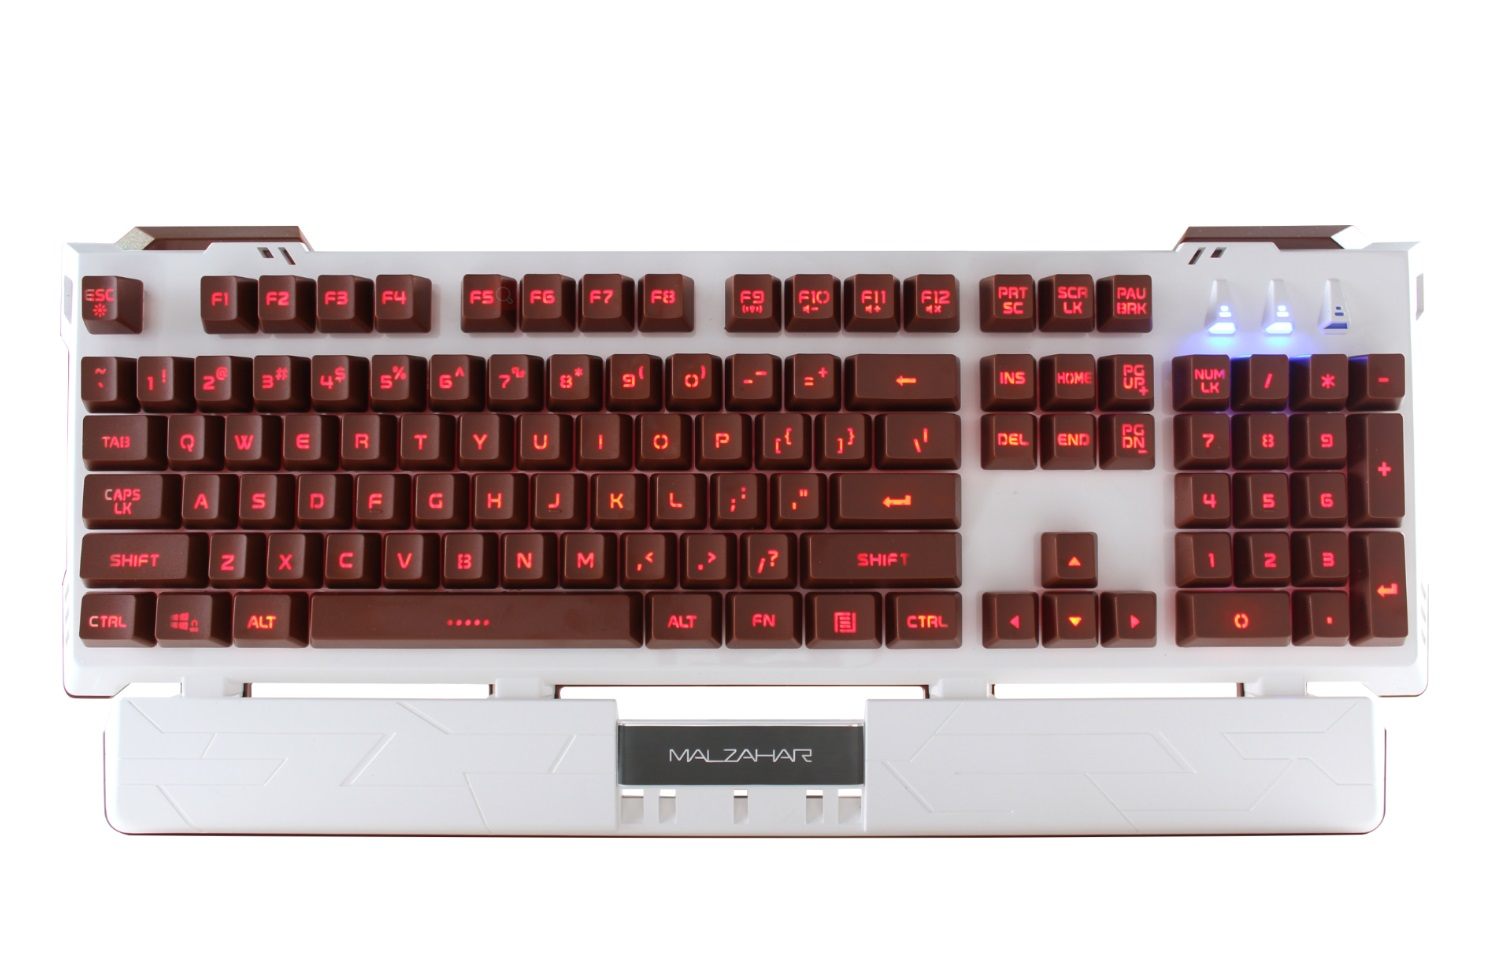 TEAMWOLF wired membrain gaming keyboard AK616